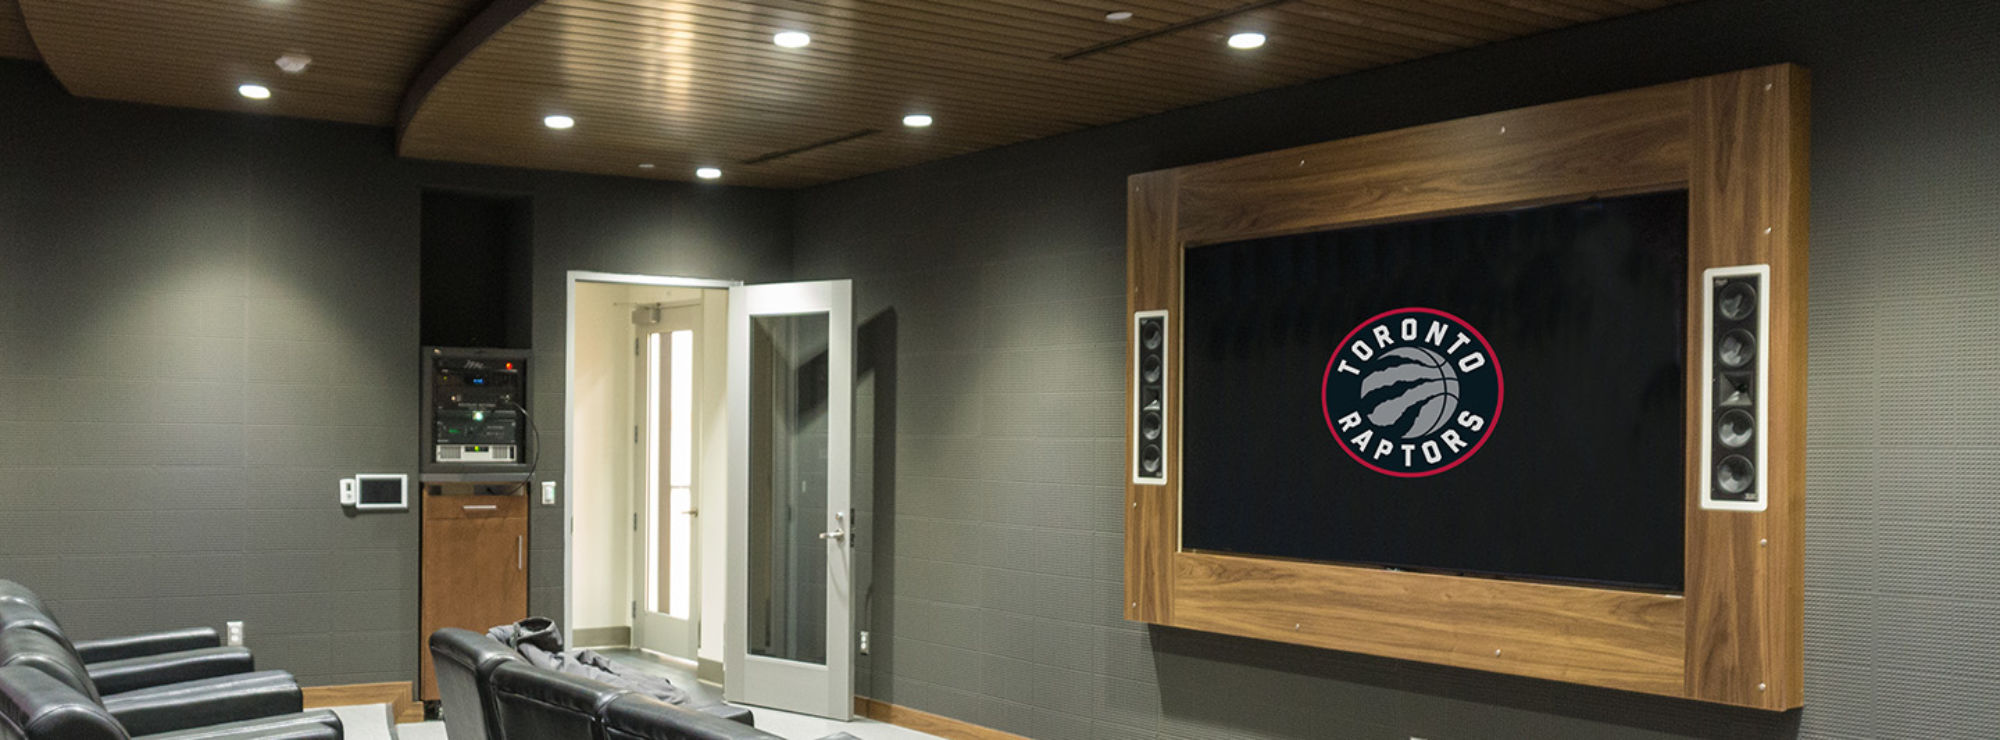 Klipsch in wall speakers at the Toronto Raptors practice facility